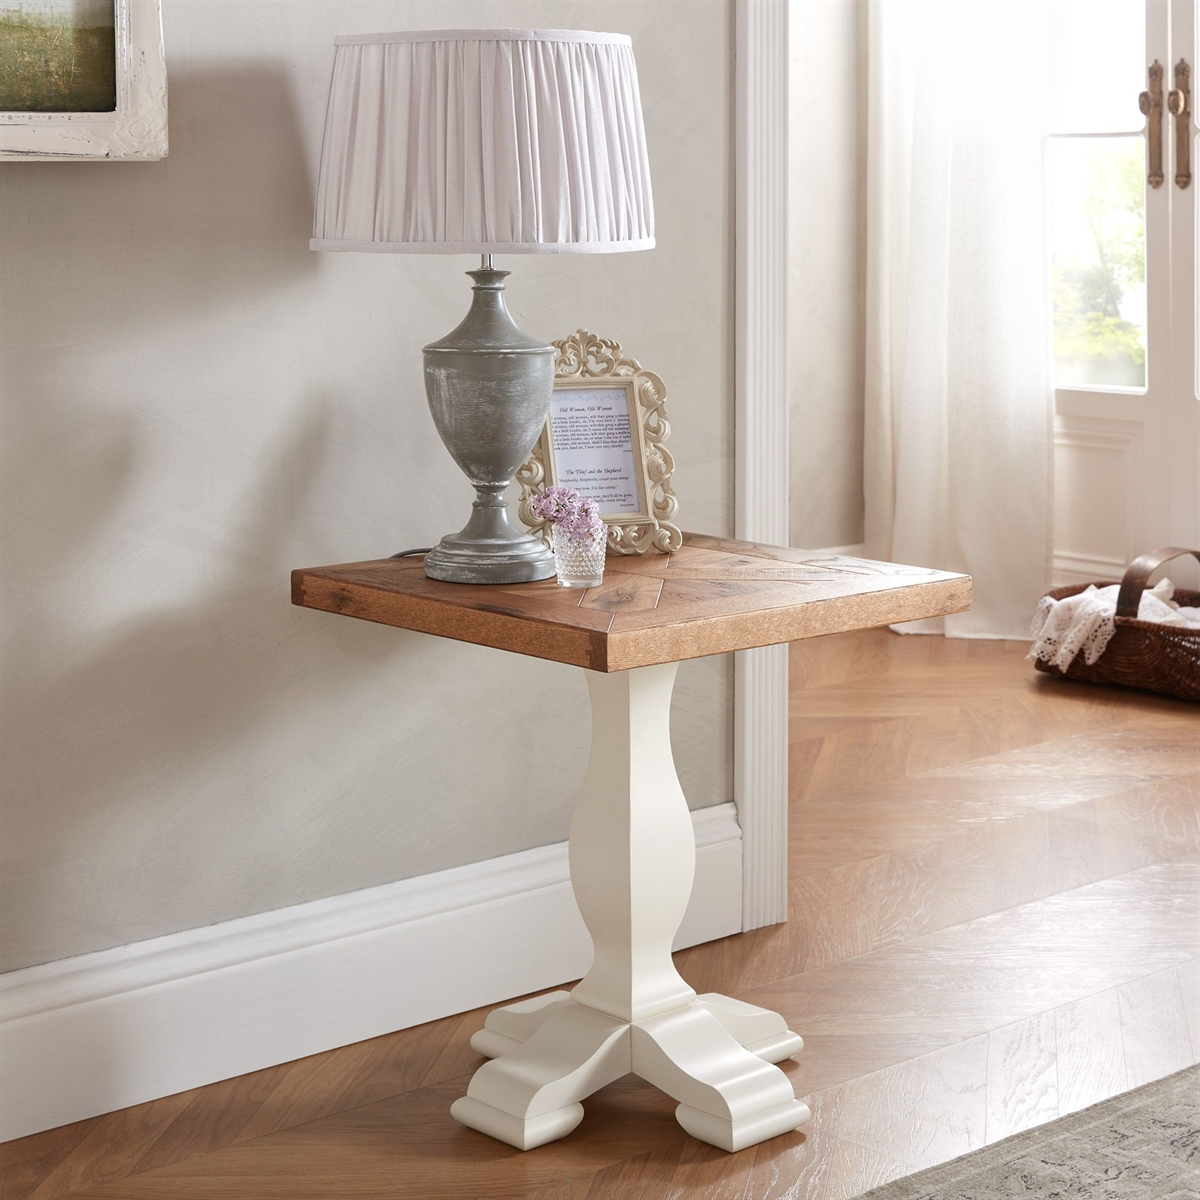 Belgrave Lamp Table - 2 Tone